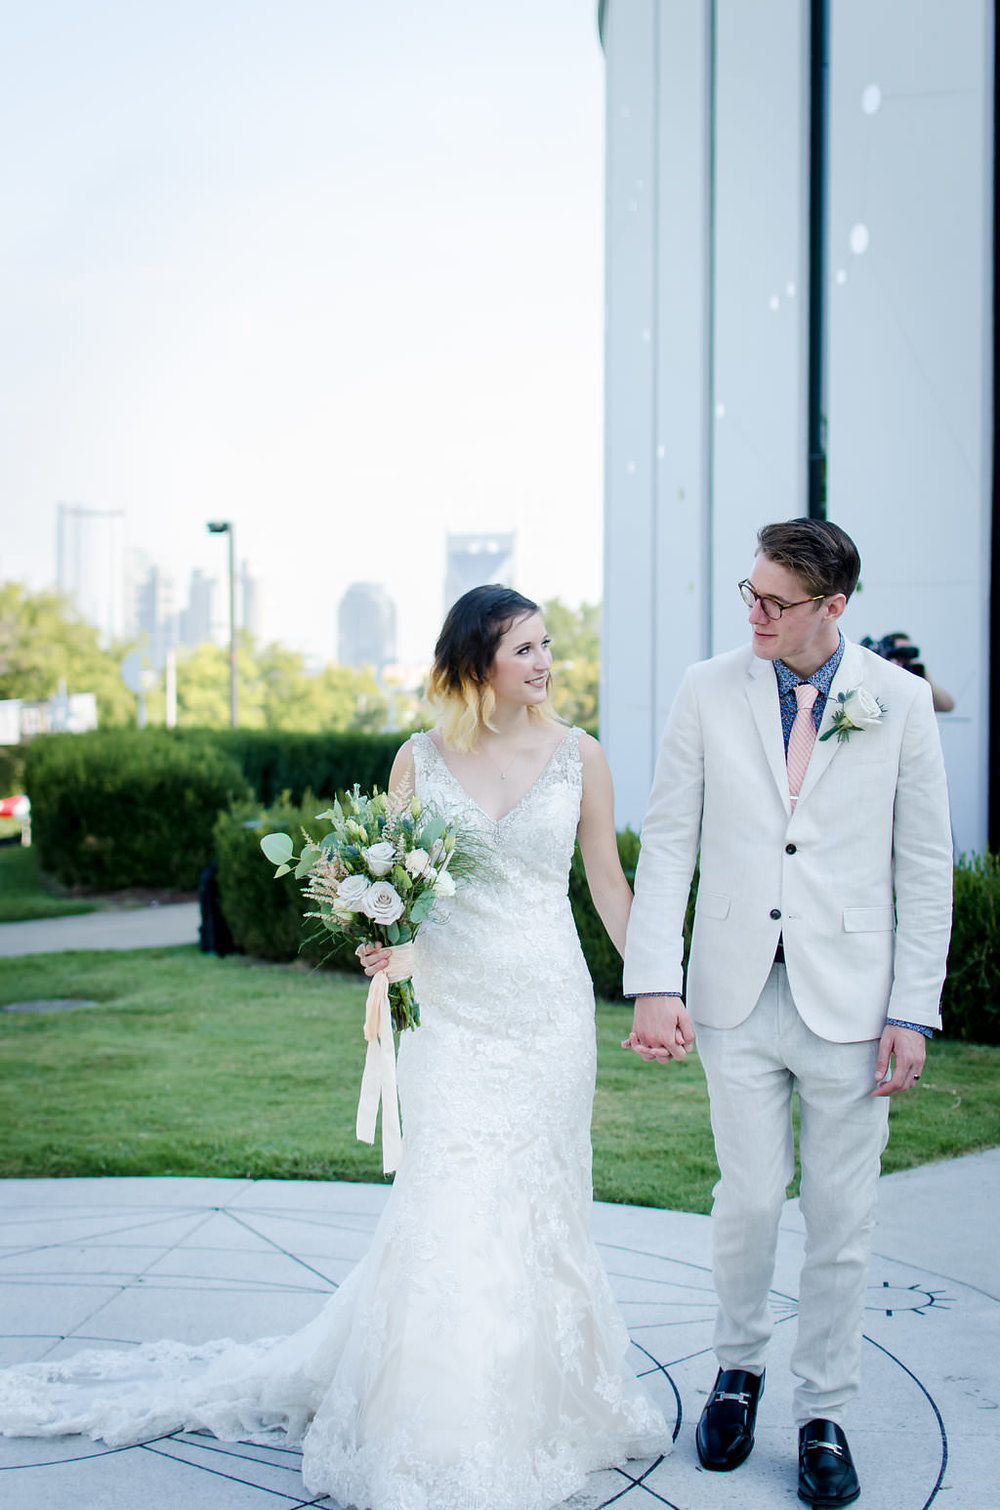 Dan-Katie-Solar-Eclipse-Elopement-Adventure-Science-Center-Nashville-Wedding-Photographers + 26